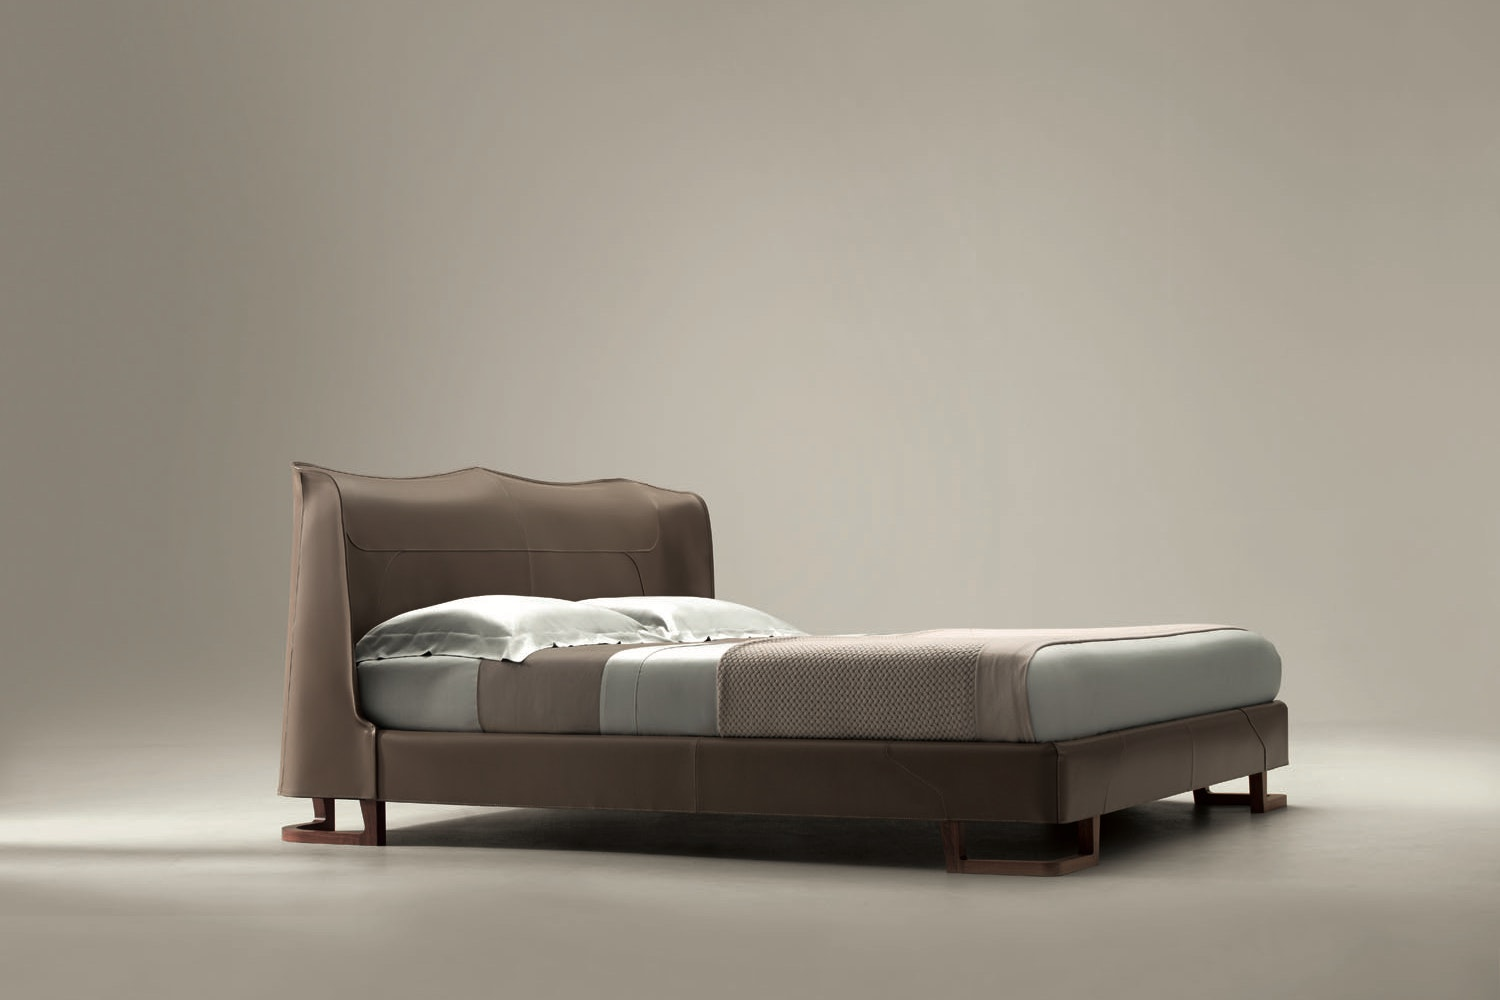 Corium Bed by Umberto Asnago for Giorgetti